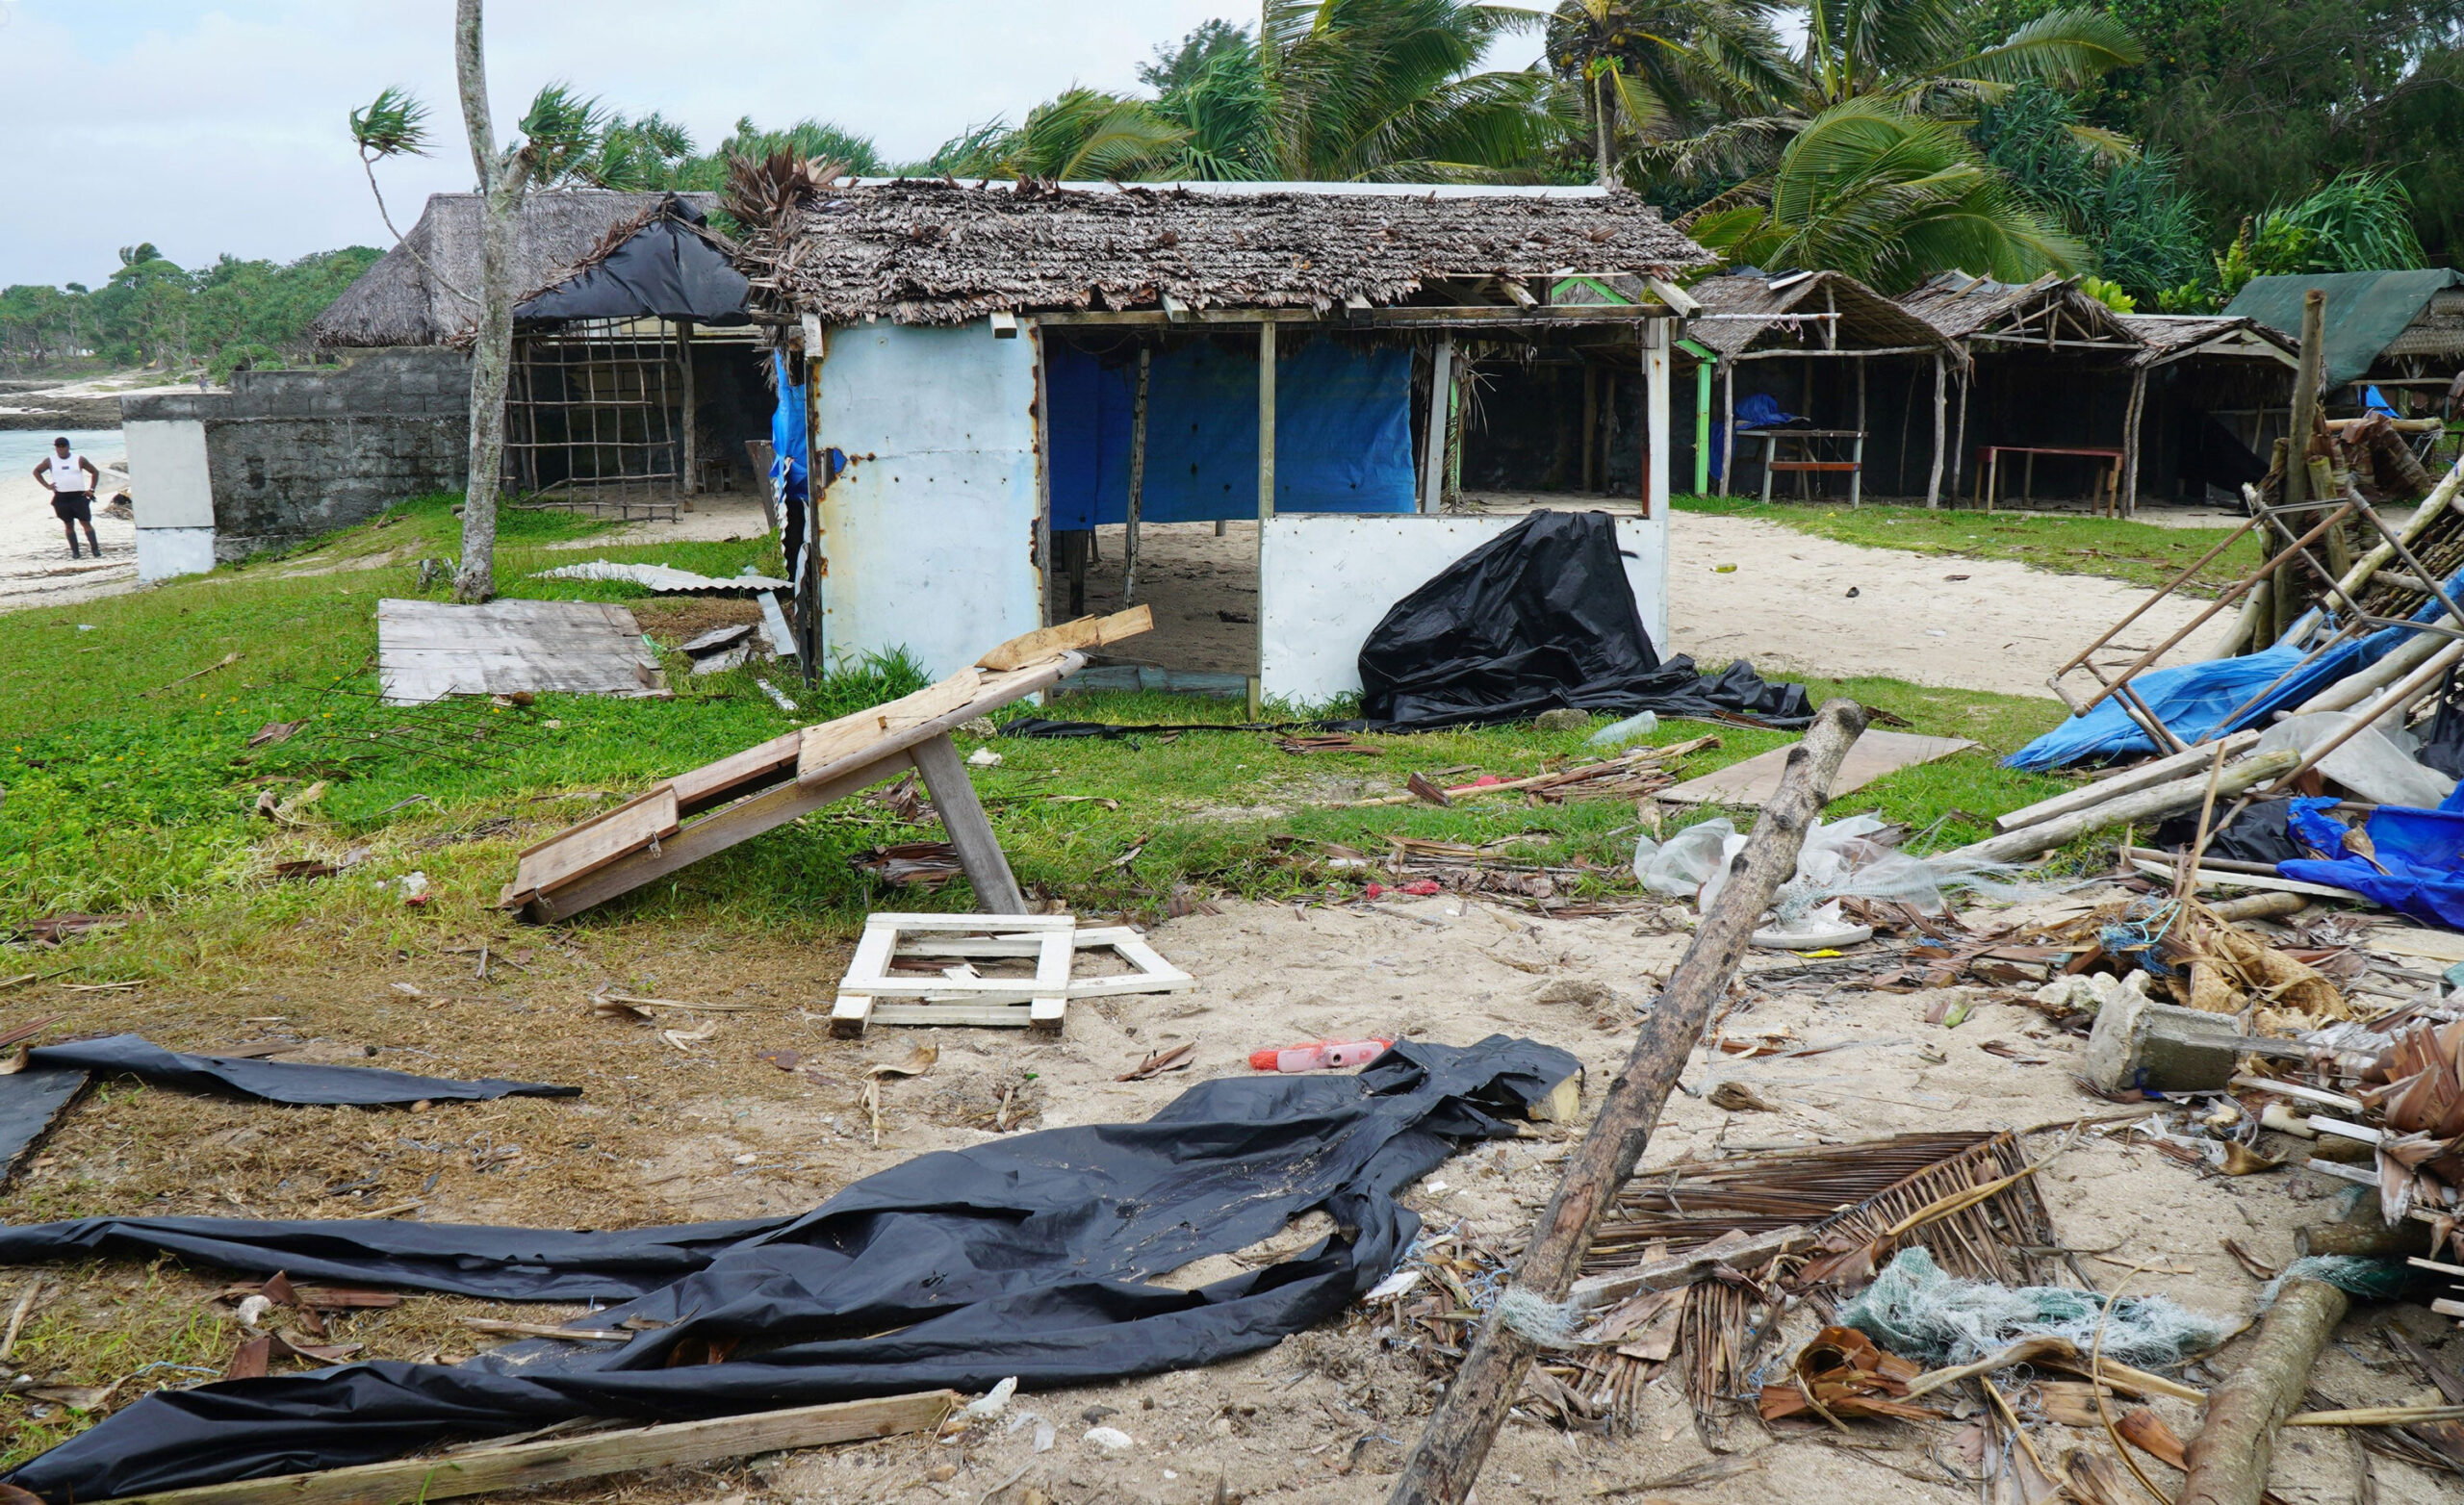 <i>Philippe Carillo/AFP/Getty Images</i><br/>Badly damaged buildings are pictured near Vanuatu's capital of Port Vila on April 7